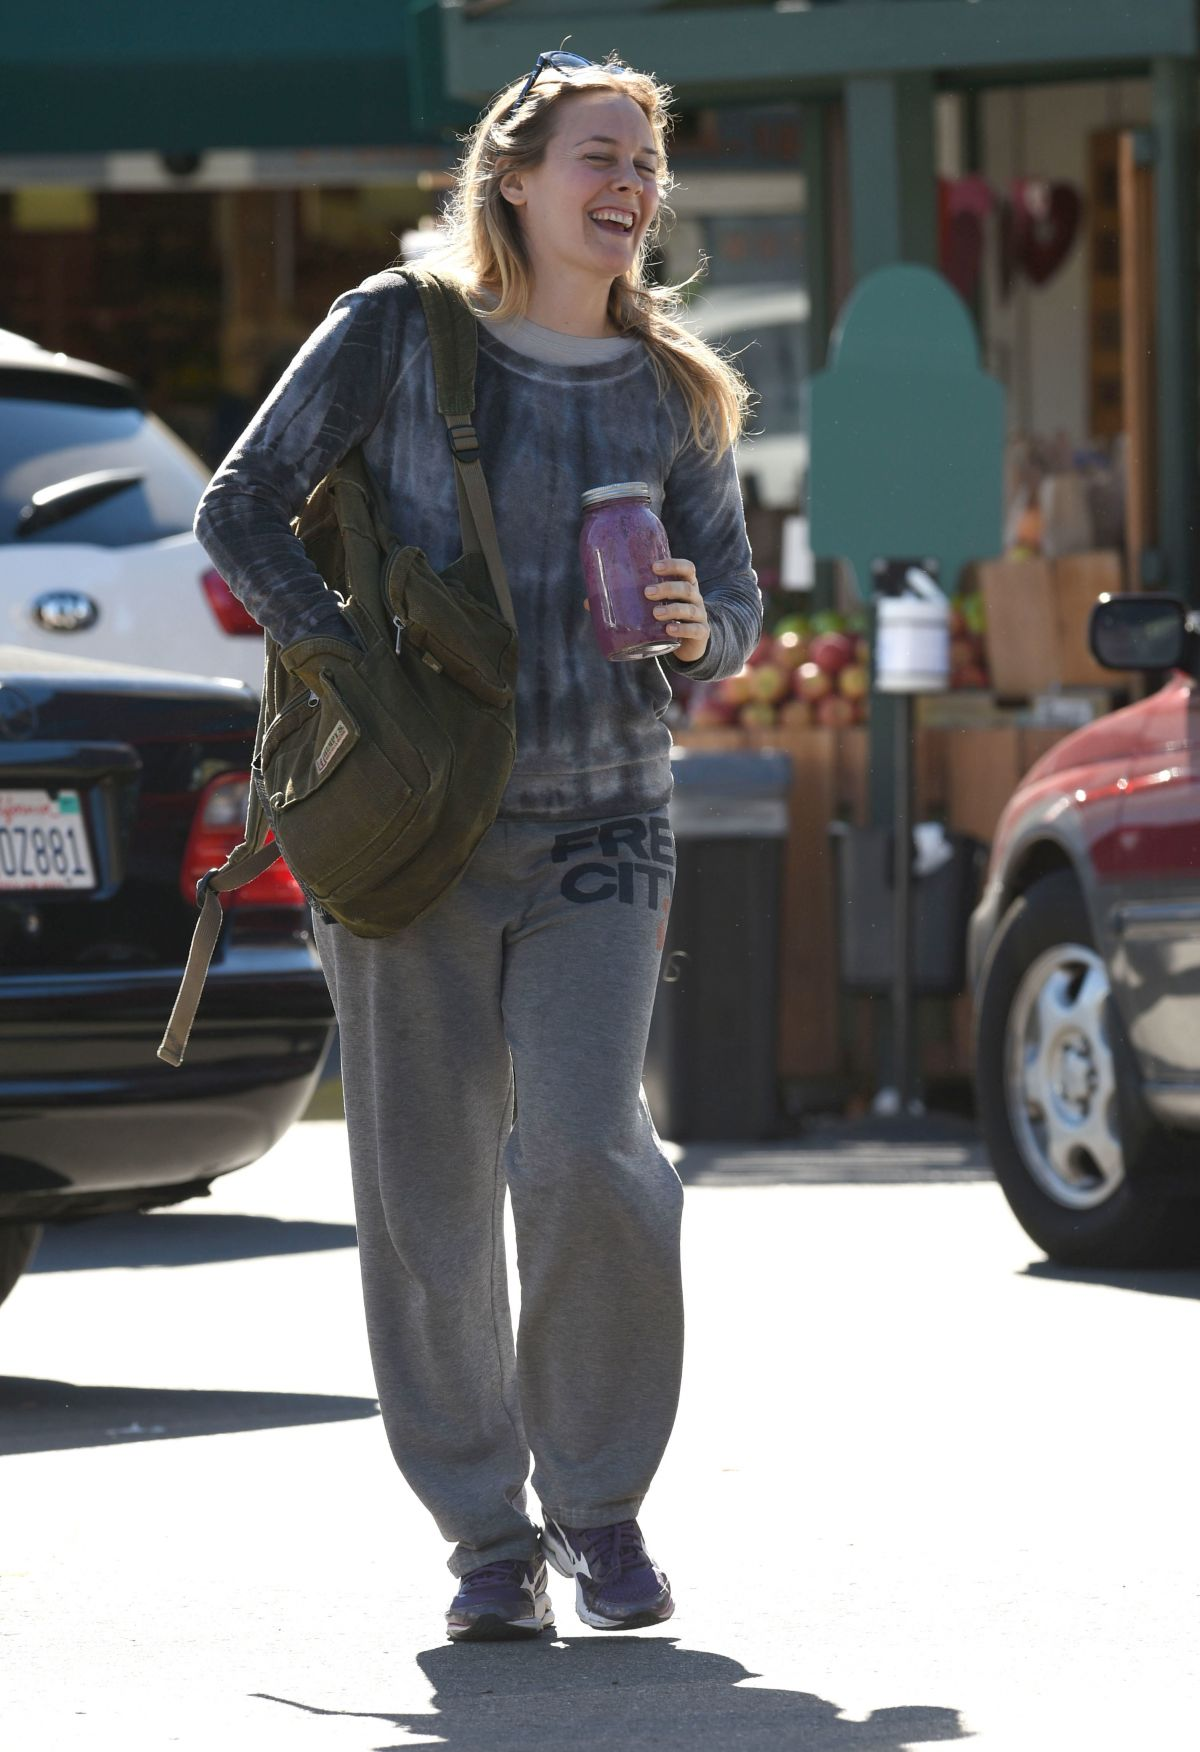 ALICIA SILVERSTONE at Whole Foods in Los Angeles 02/05/2016